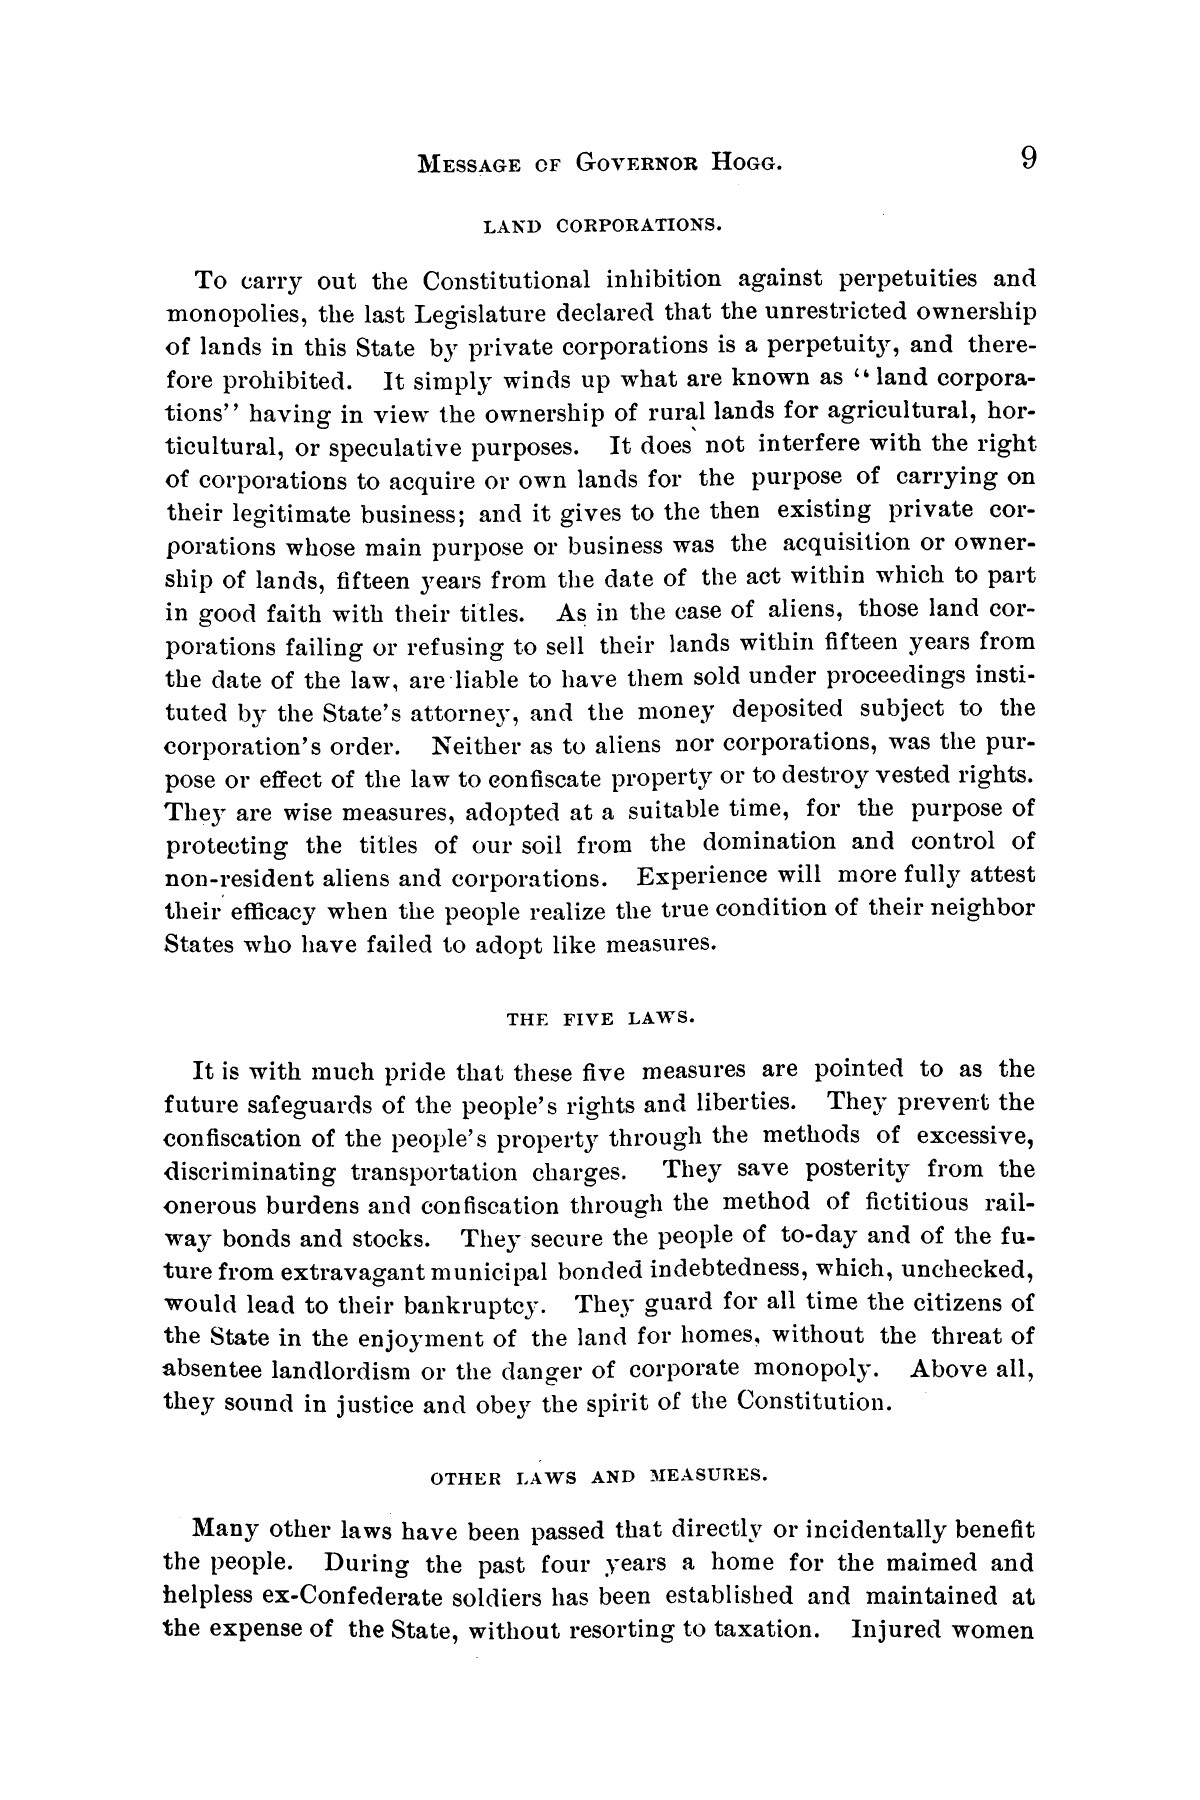 Message of Governor James S. Hogg to the twenty-fourth legislature of Texas                                                                                                      [Sequence #]: 9 of 48